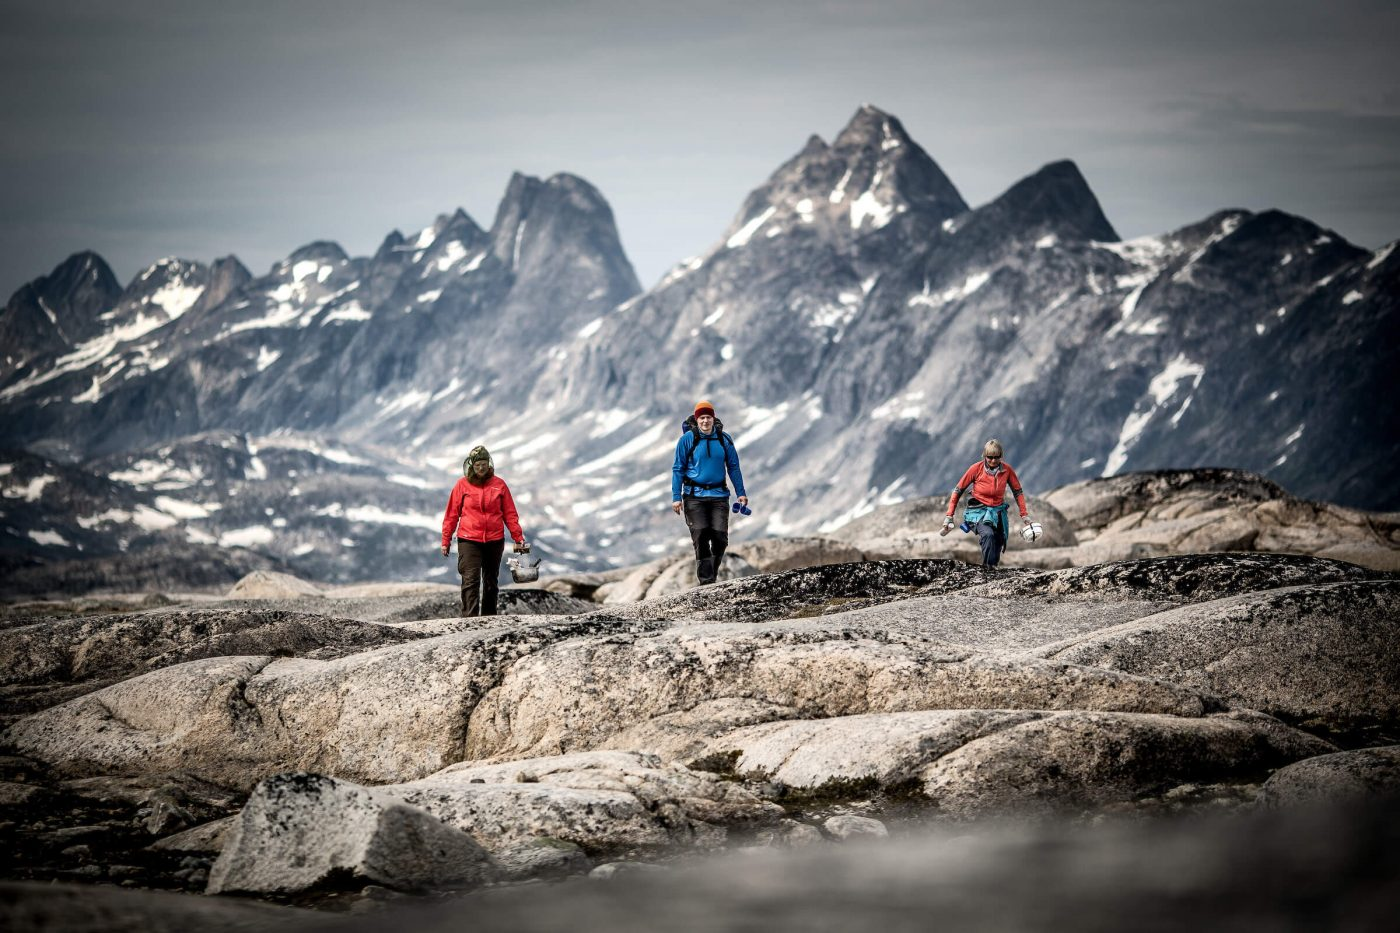 Three hikers in the mountains near Qernertivartivit not far from Kulusuk in East Greenland. Photo by Mads Pihl